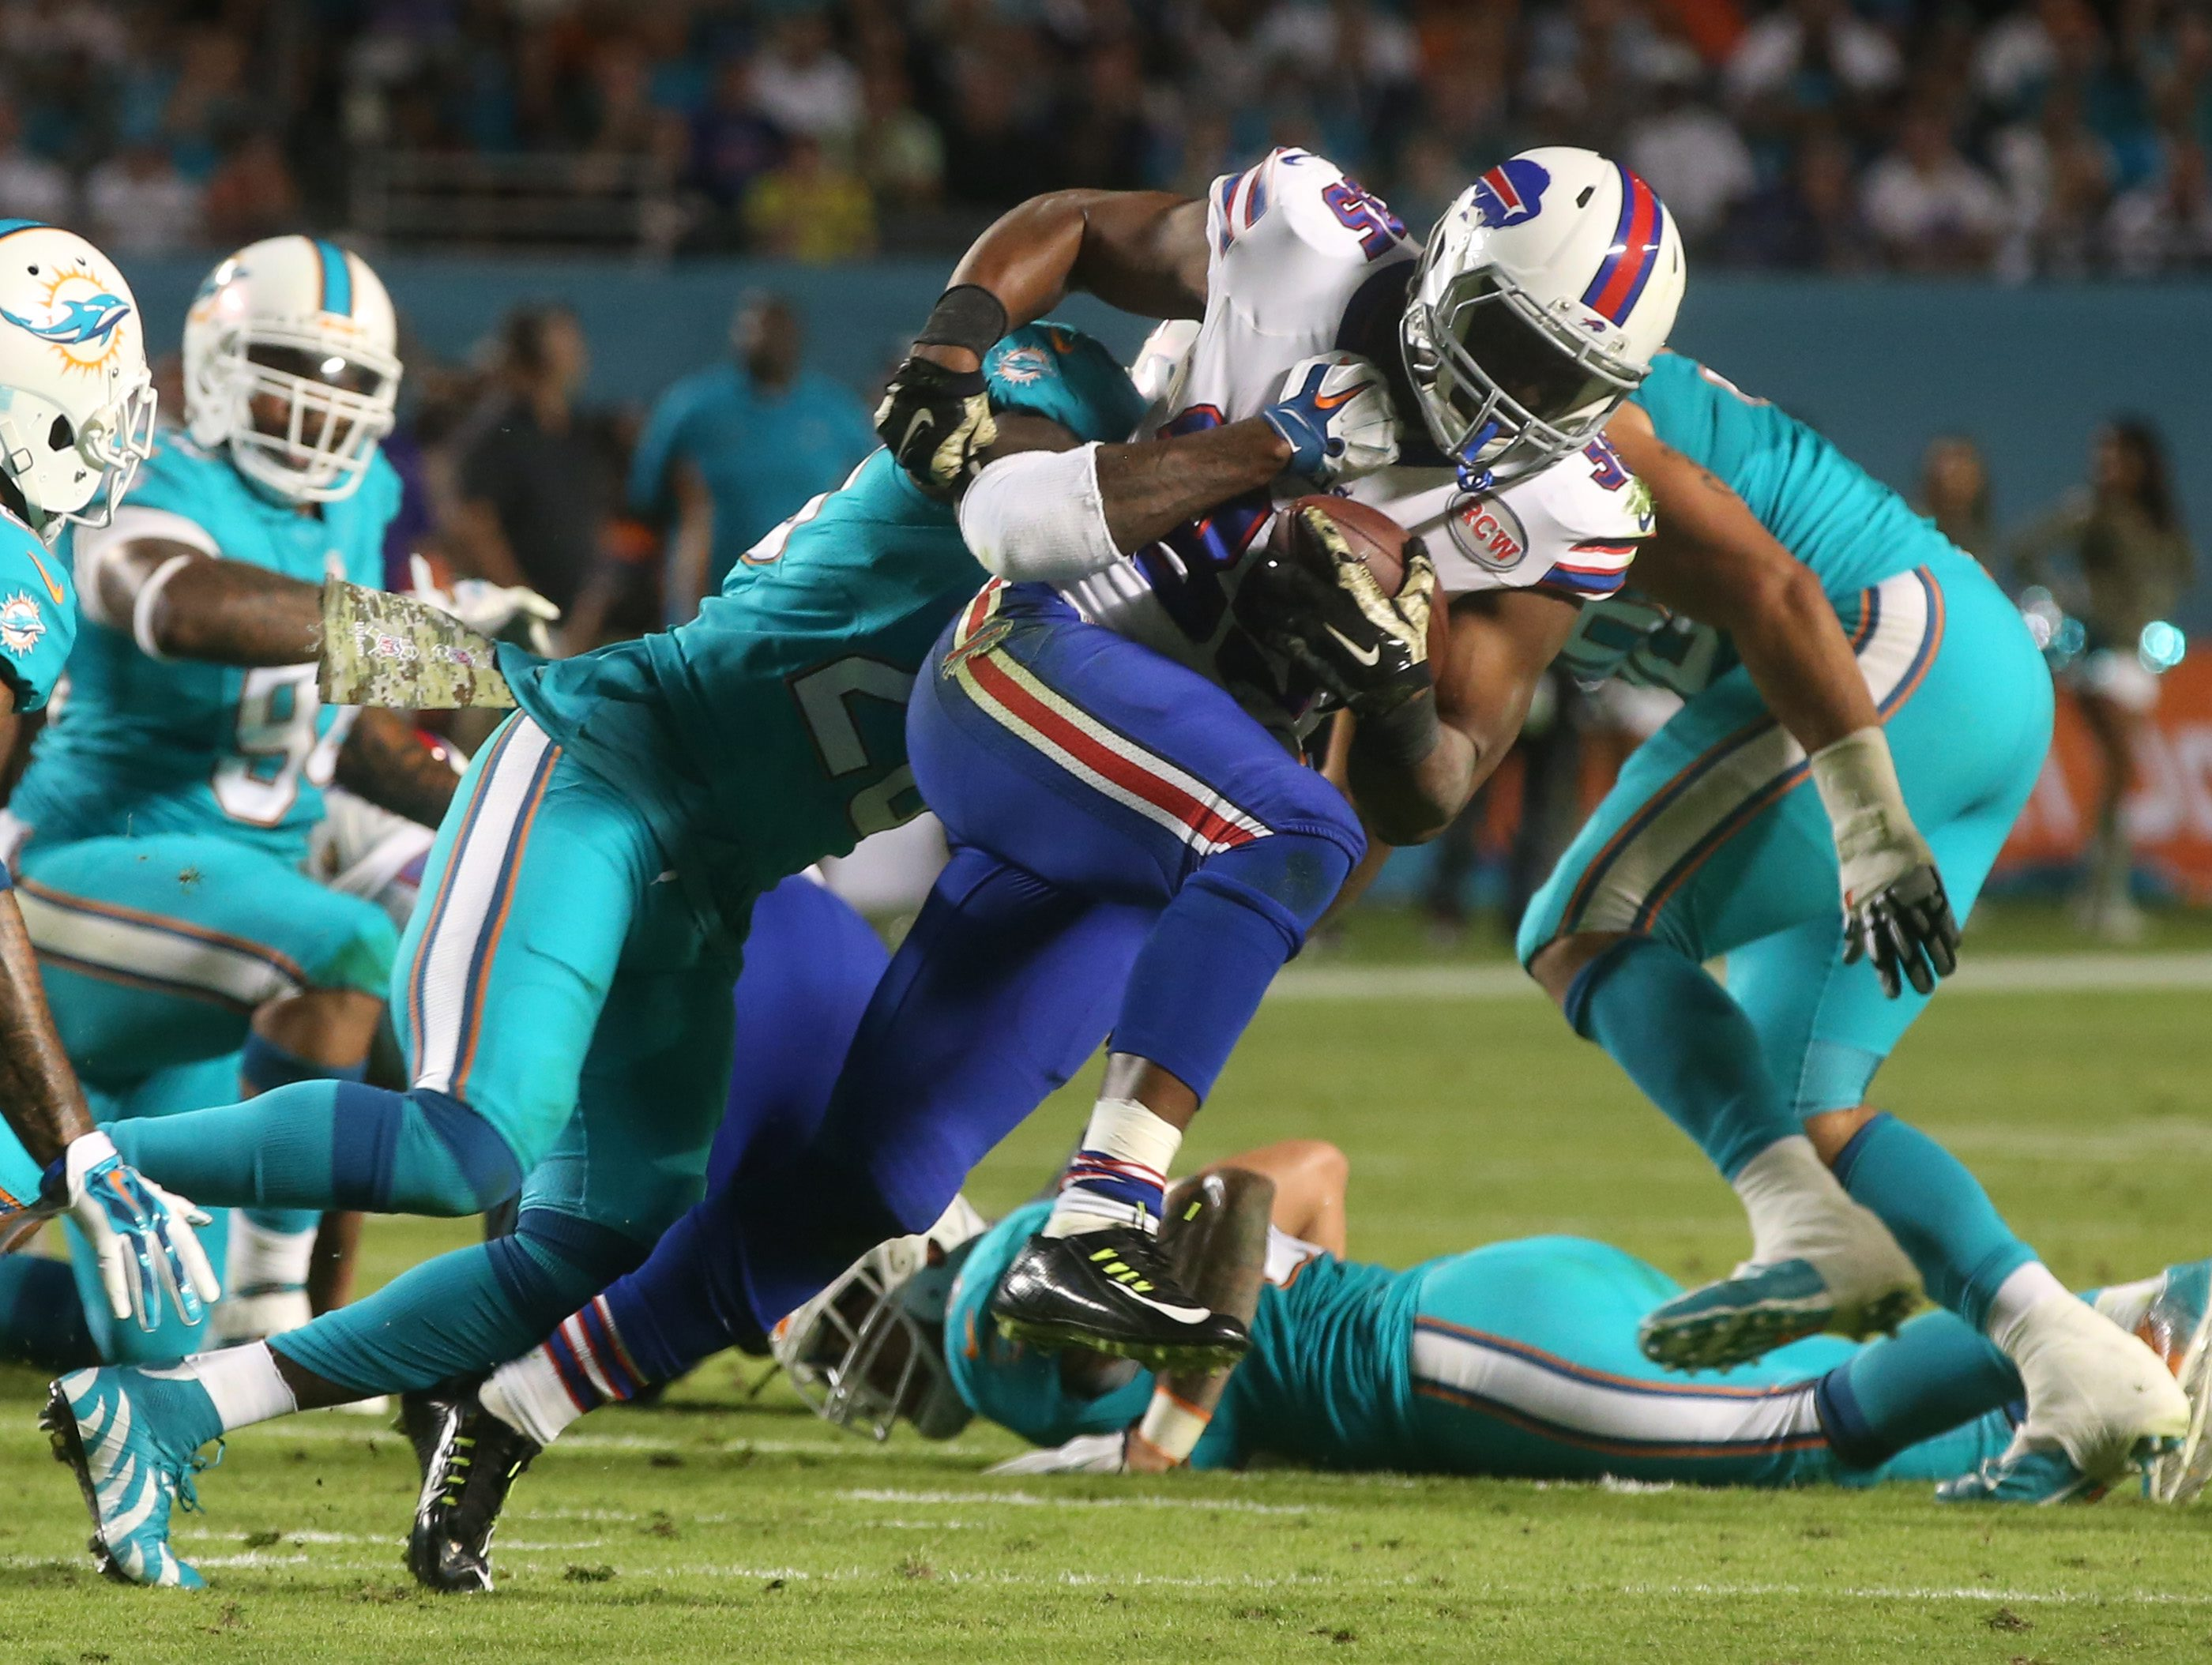 Bills running back Bryce Brown is currently away from the team tending to a personal matter and did not participate in the recent voluntary veteran minicamp. His missed time has put him behind the other running backs he's competing against for a spot on the roster.